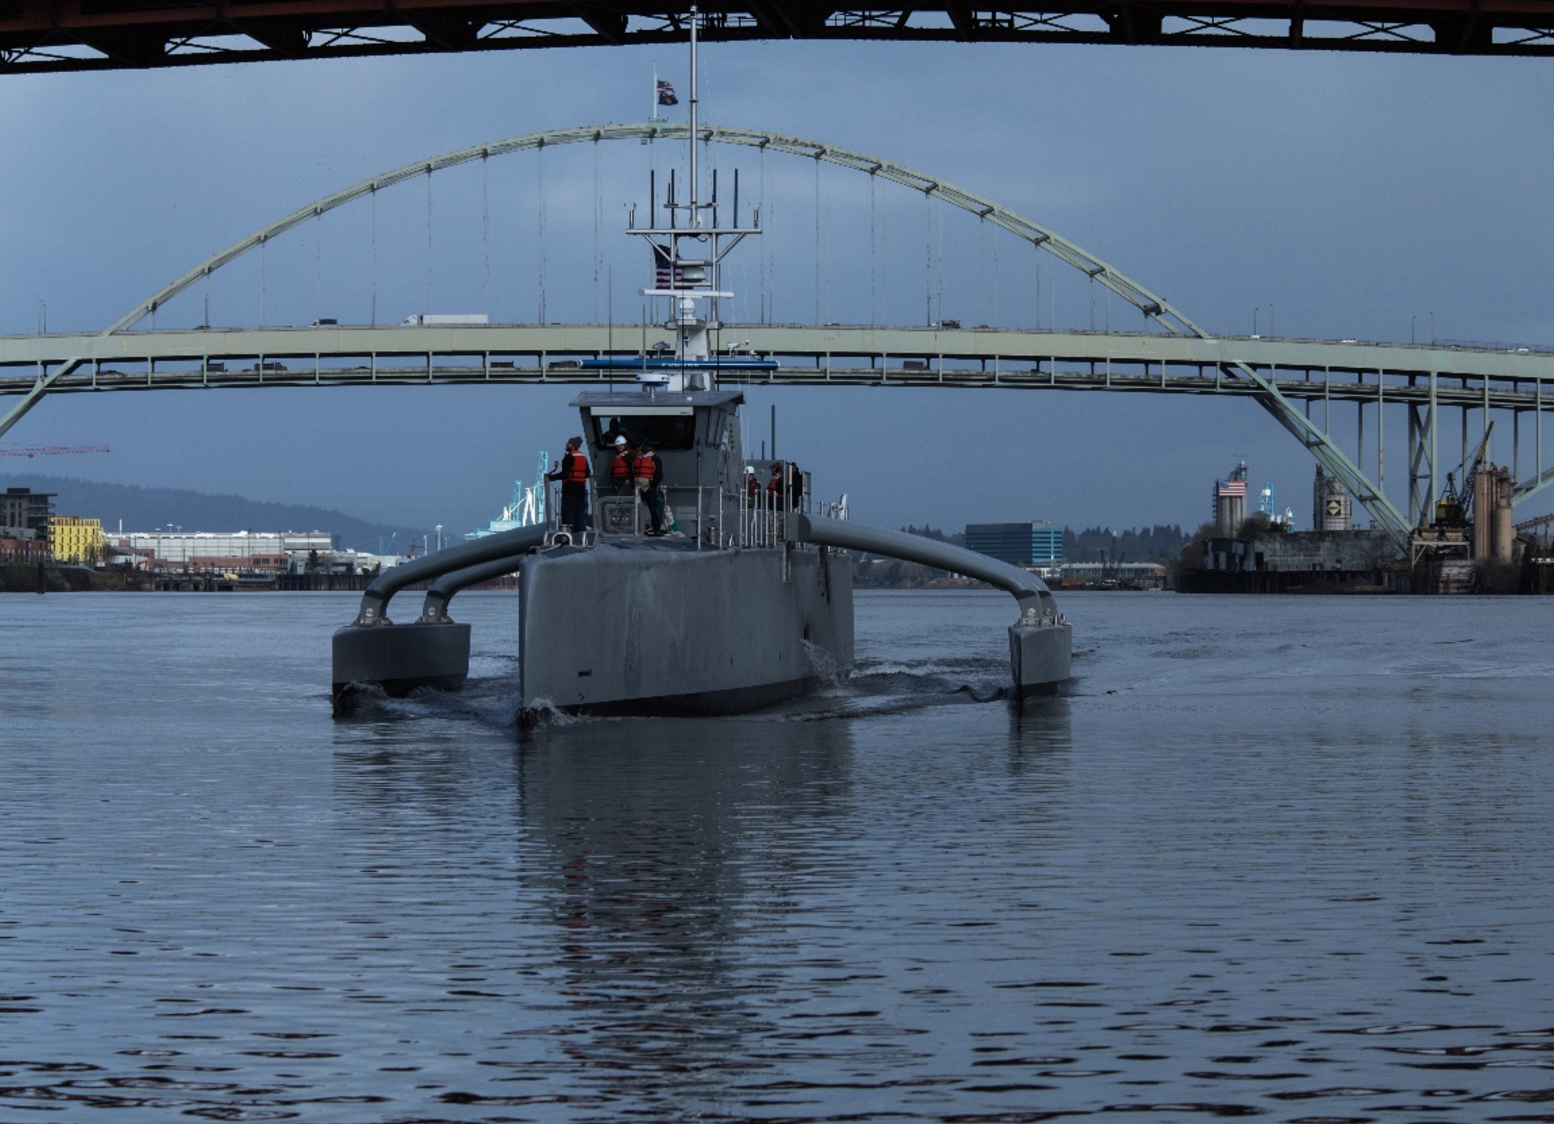 The Defense Advanced Research Projects Agency tests its Sea Hunter unmanned vehicle -- the technology demonstration vessel it designed, developed and built through its anti-submarine warfare continuous trail unmanned vessel program, or ACTUV -- in Portland, Ore., prior to an April 7 commissioning ceremony. DARPA photo.